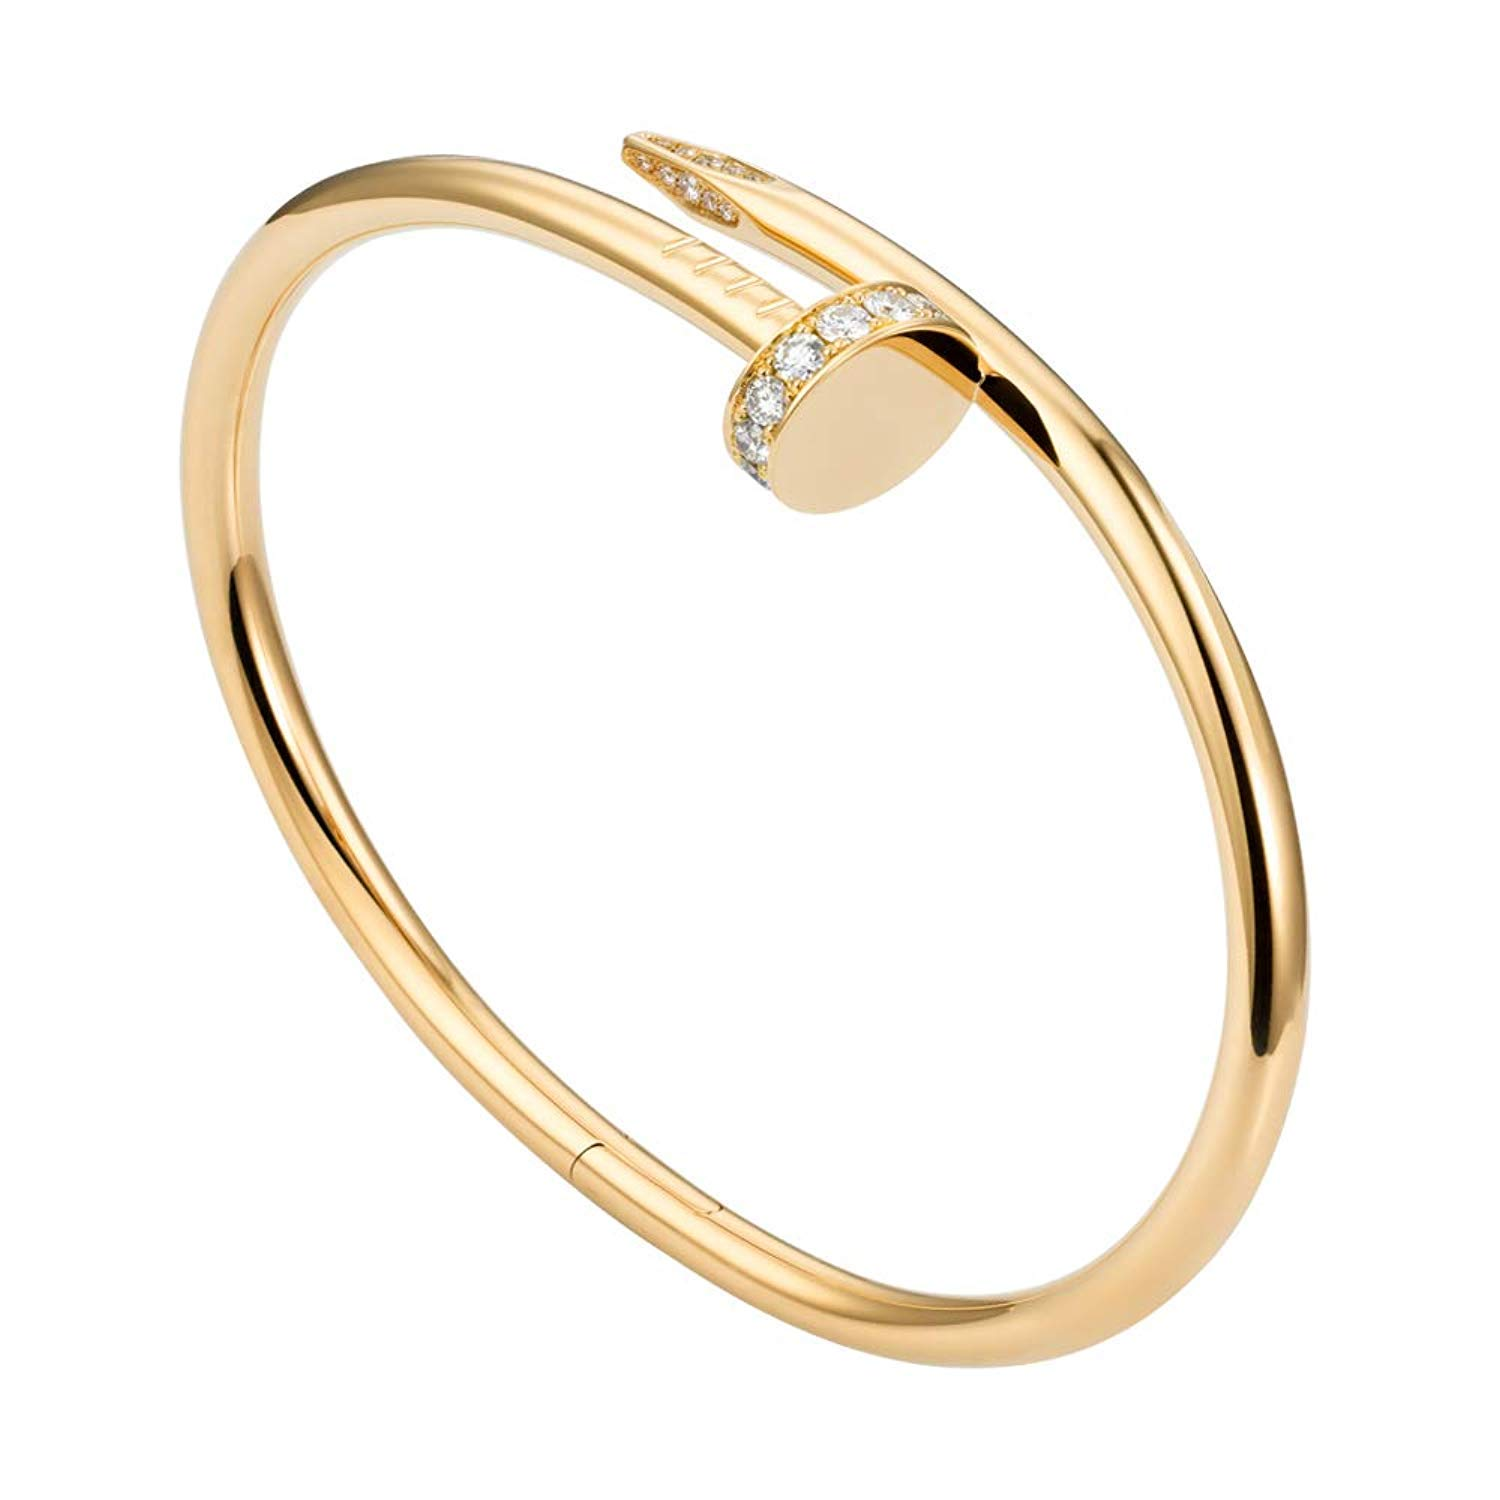 671cafa5e445b ... L&H Jewelry - Womens Stainless Steel Nail Love Bangle Bracelet - Rose  Gold Color Box Included ...